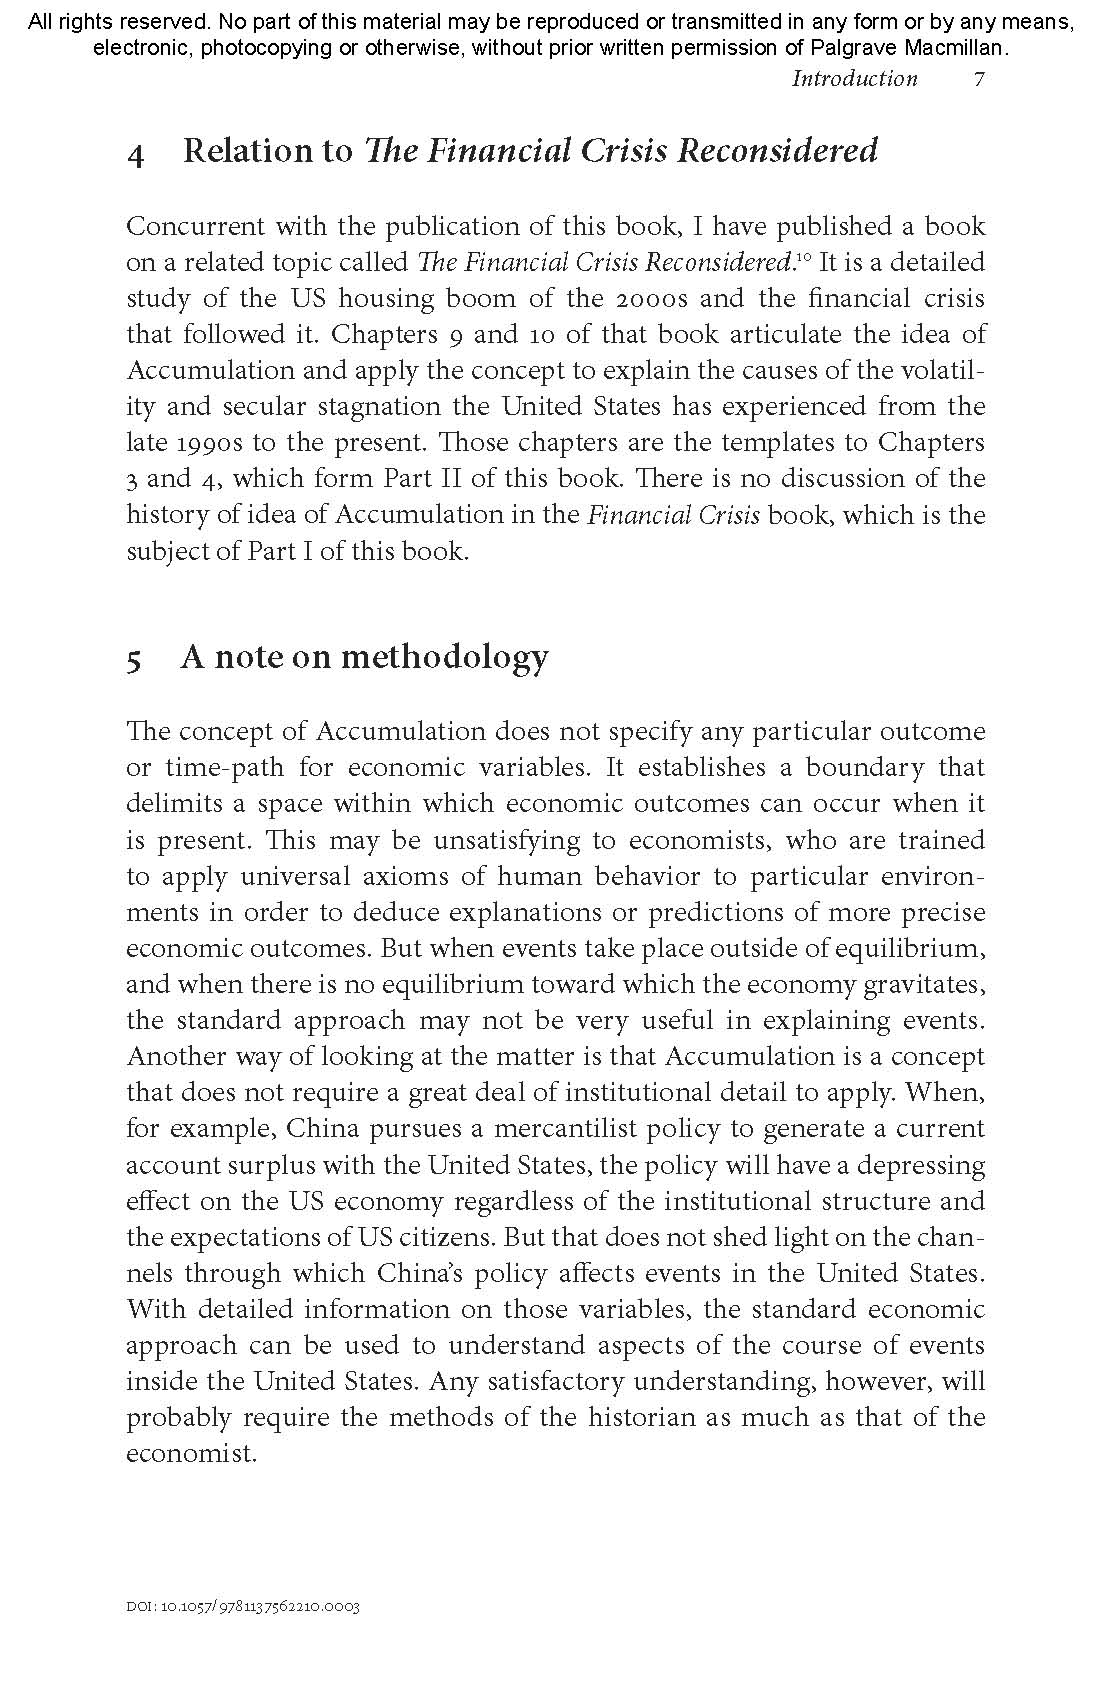 Pages from Accumulation and Secular Stagnation - pdf published book-2_Page_13.jpg